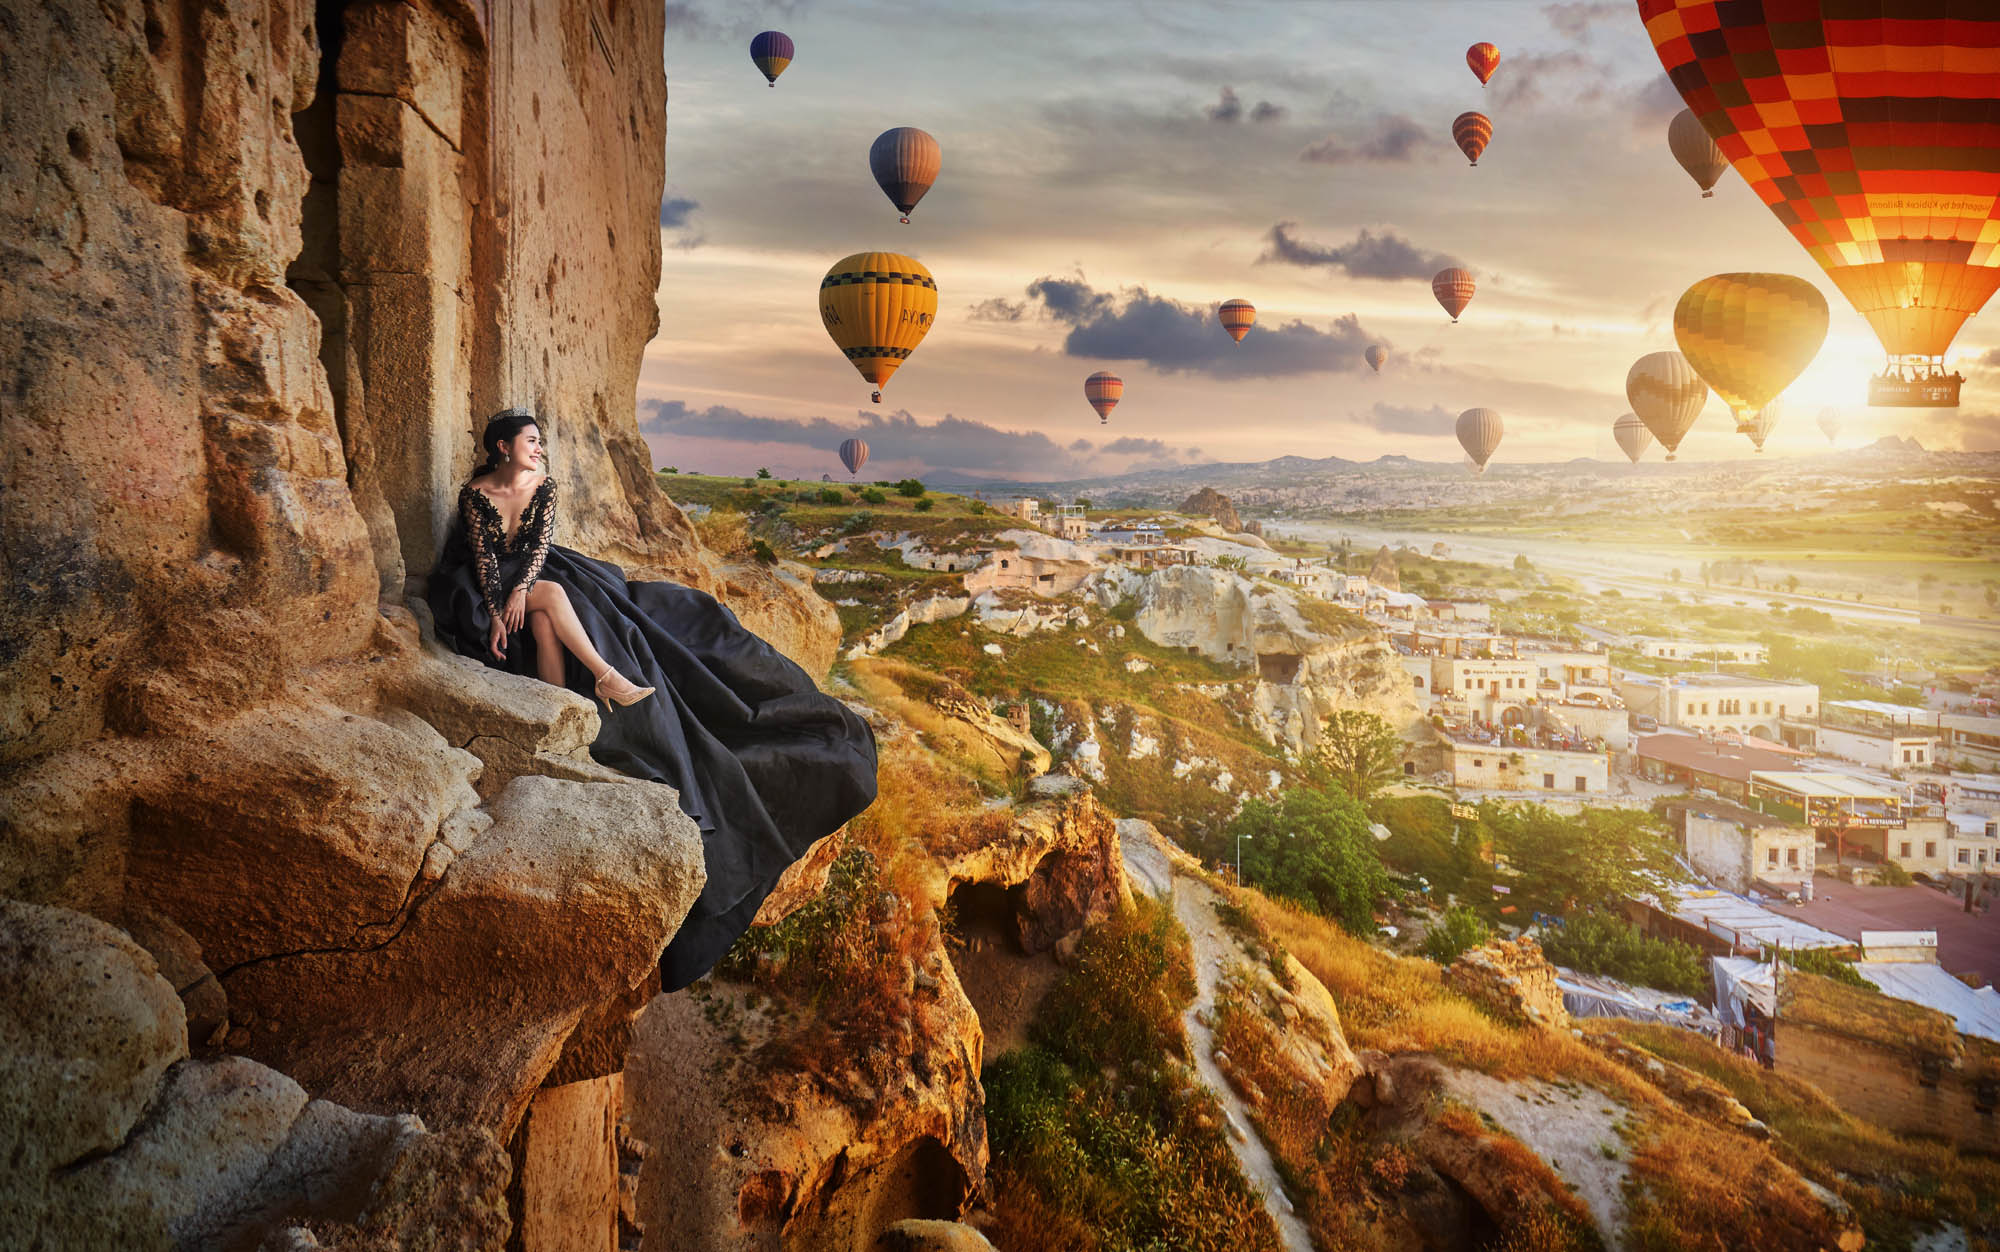 Bride in beautiful black lace gown sitting on mountain cliff with hot air balloons in background, by CM Leung